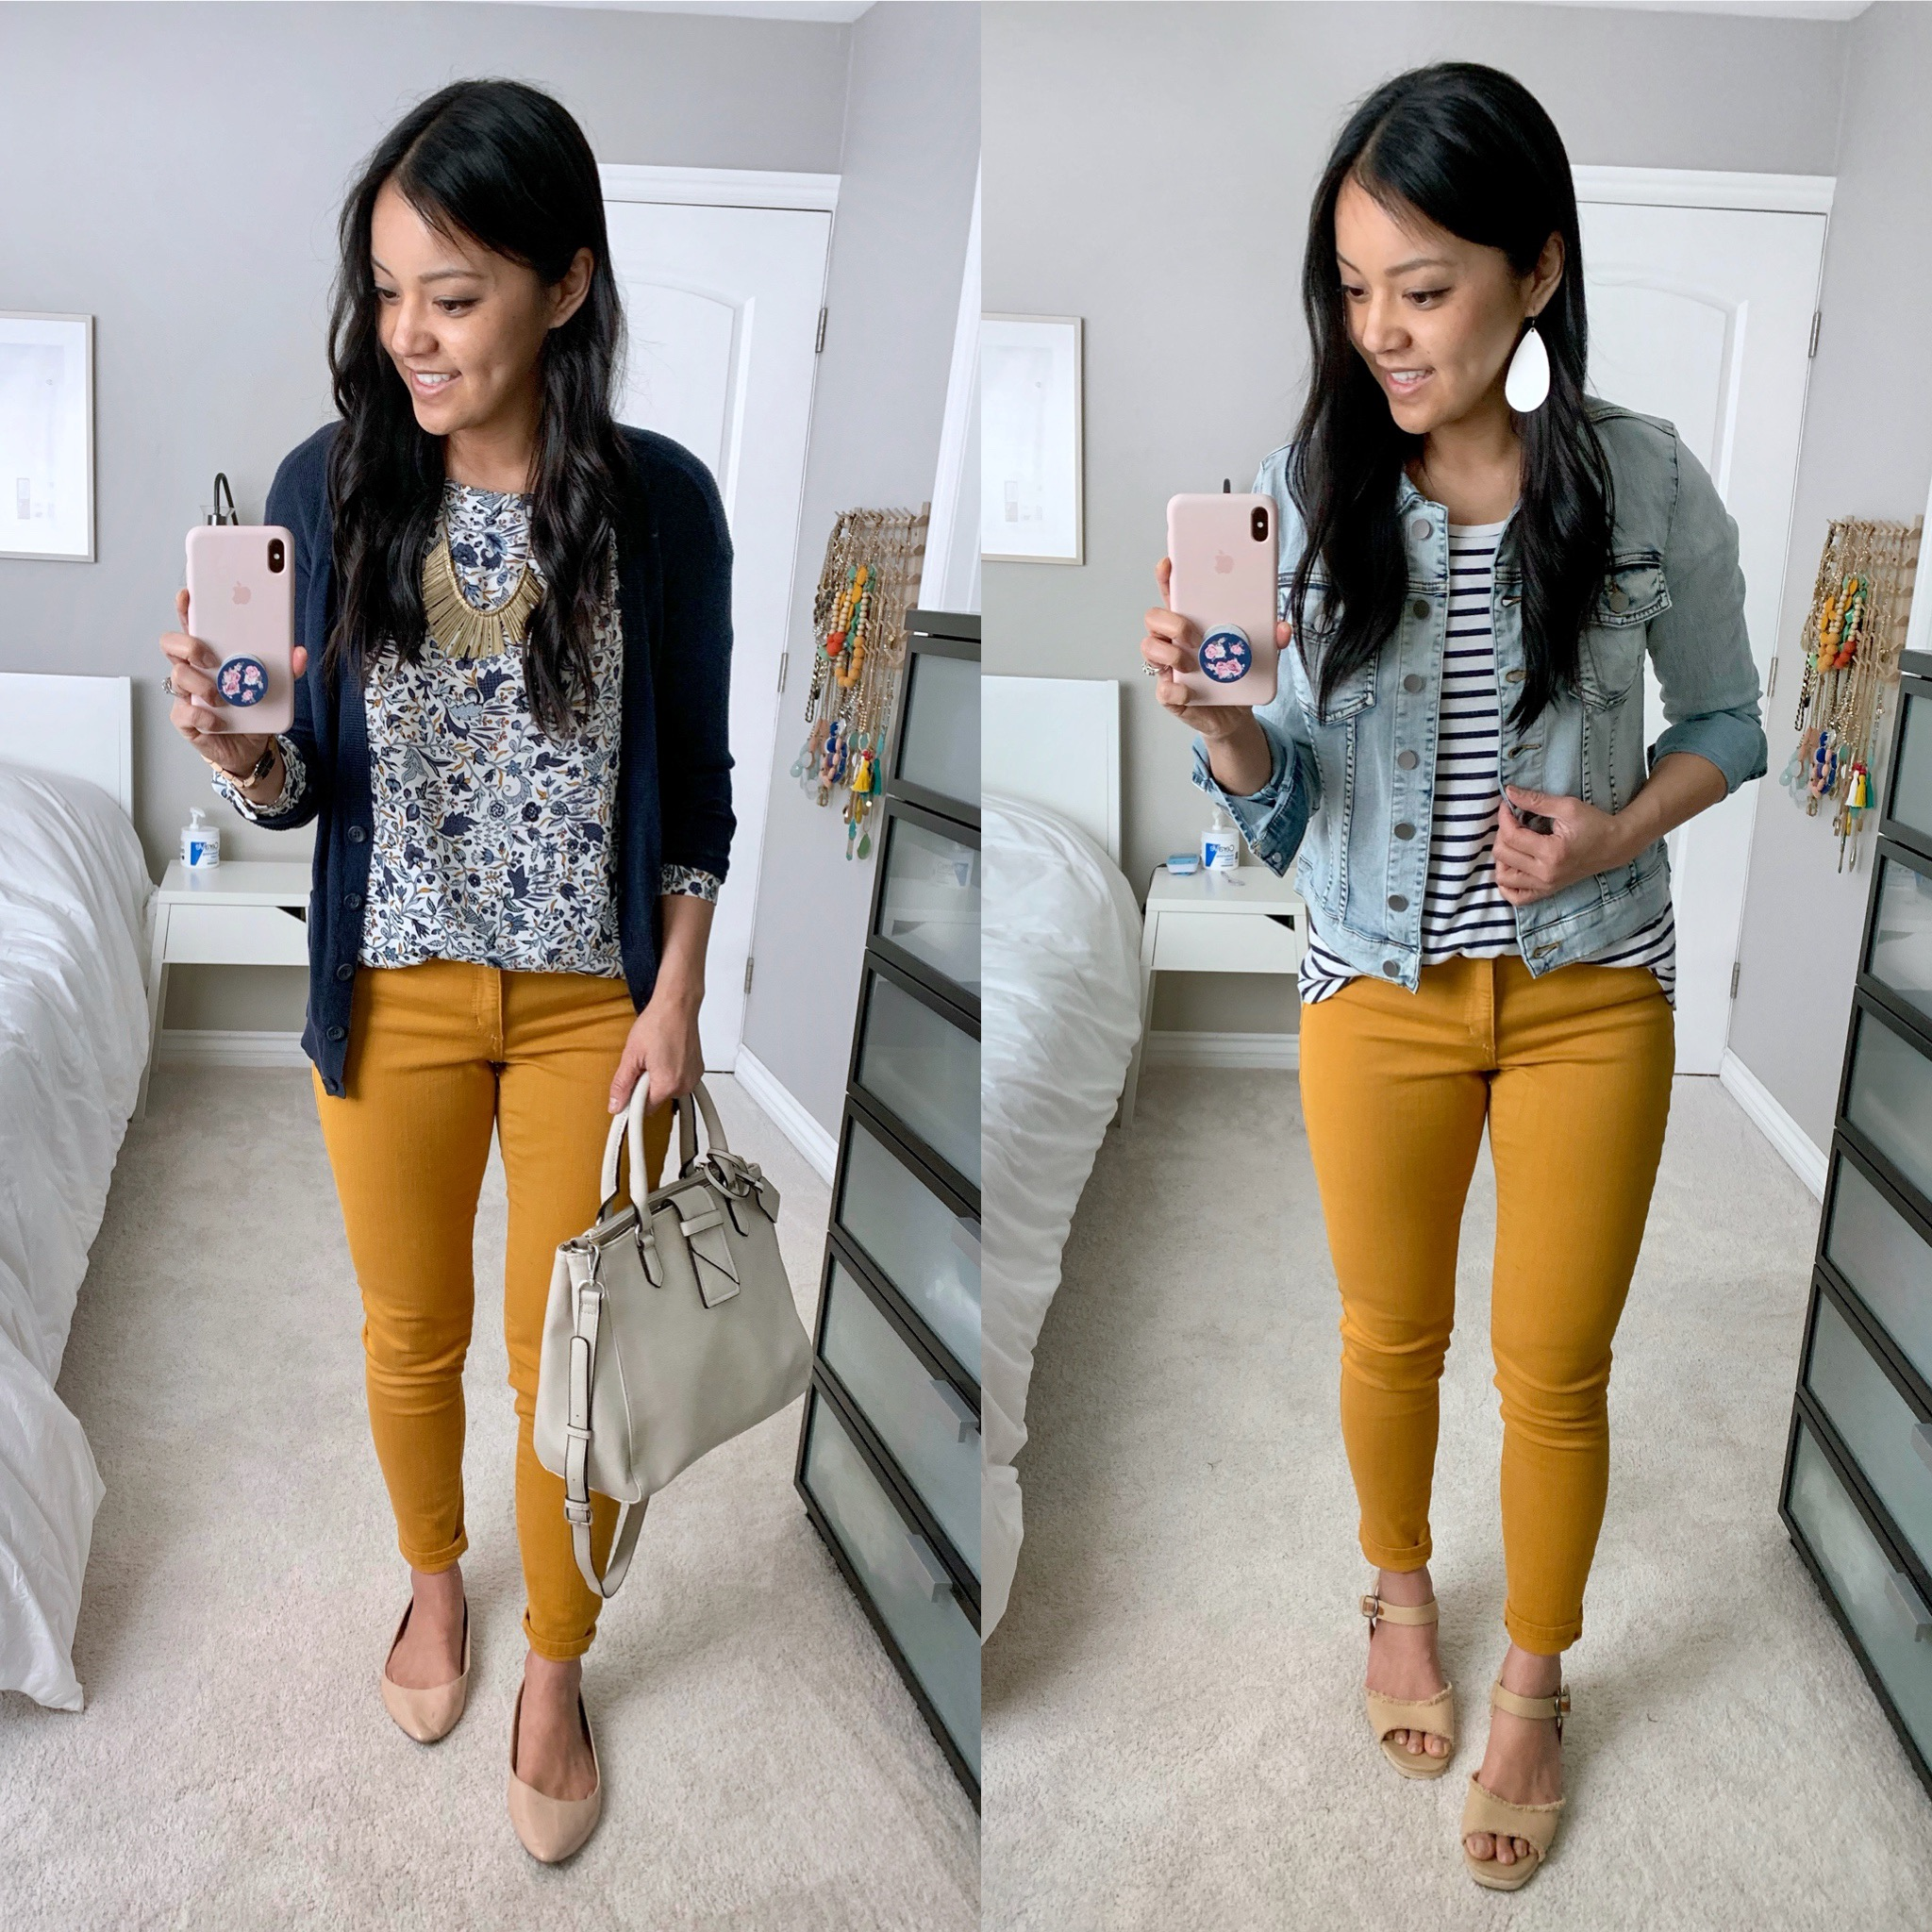 outfits with mustard yellow jeans: floral print top + navy cardigan, striped tee + denim jacket